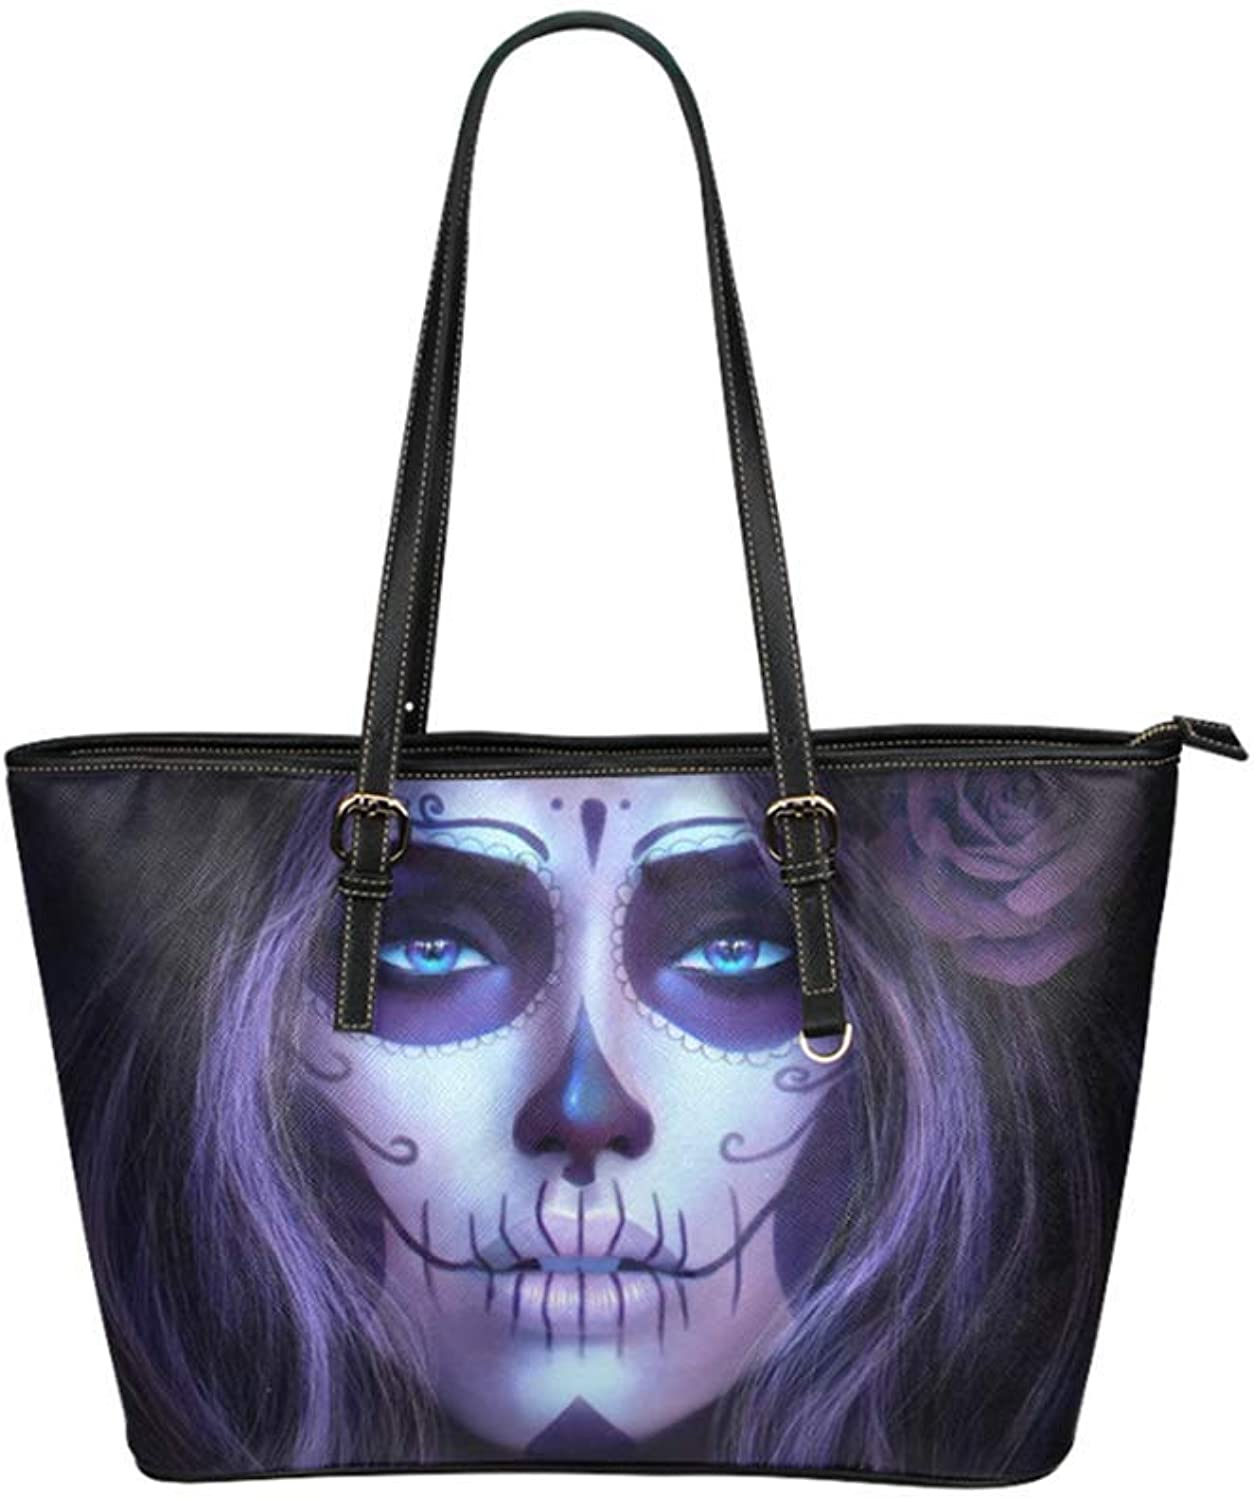 Cucoolso 16  Womens Leather Tote Bag Big Capacity Shopper Should Travel Handbag with Day of The Dead Sugar Skull Print